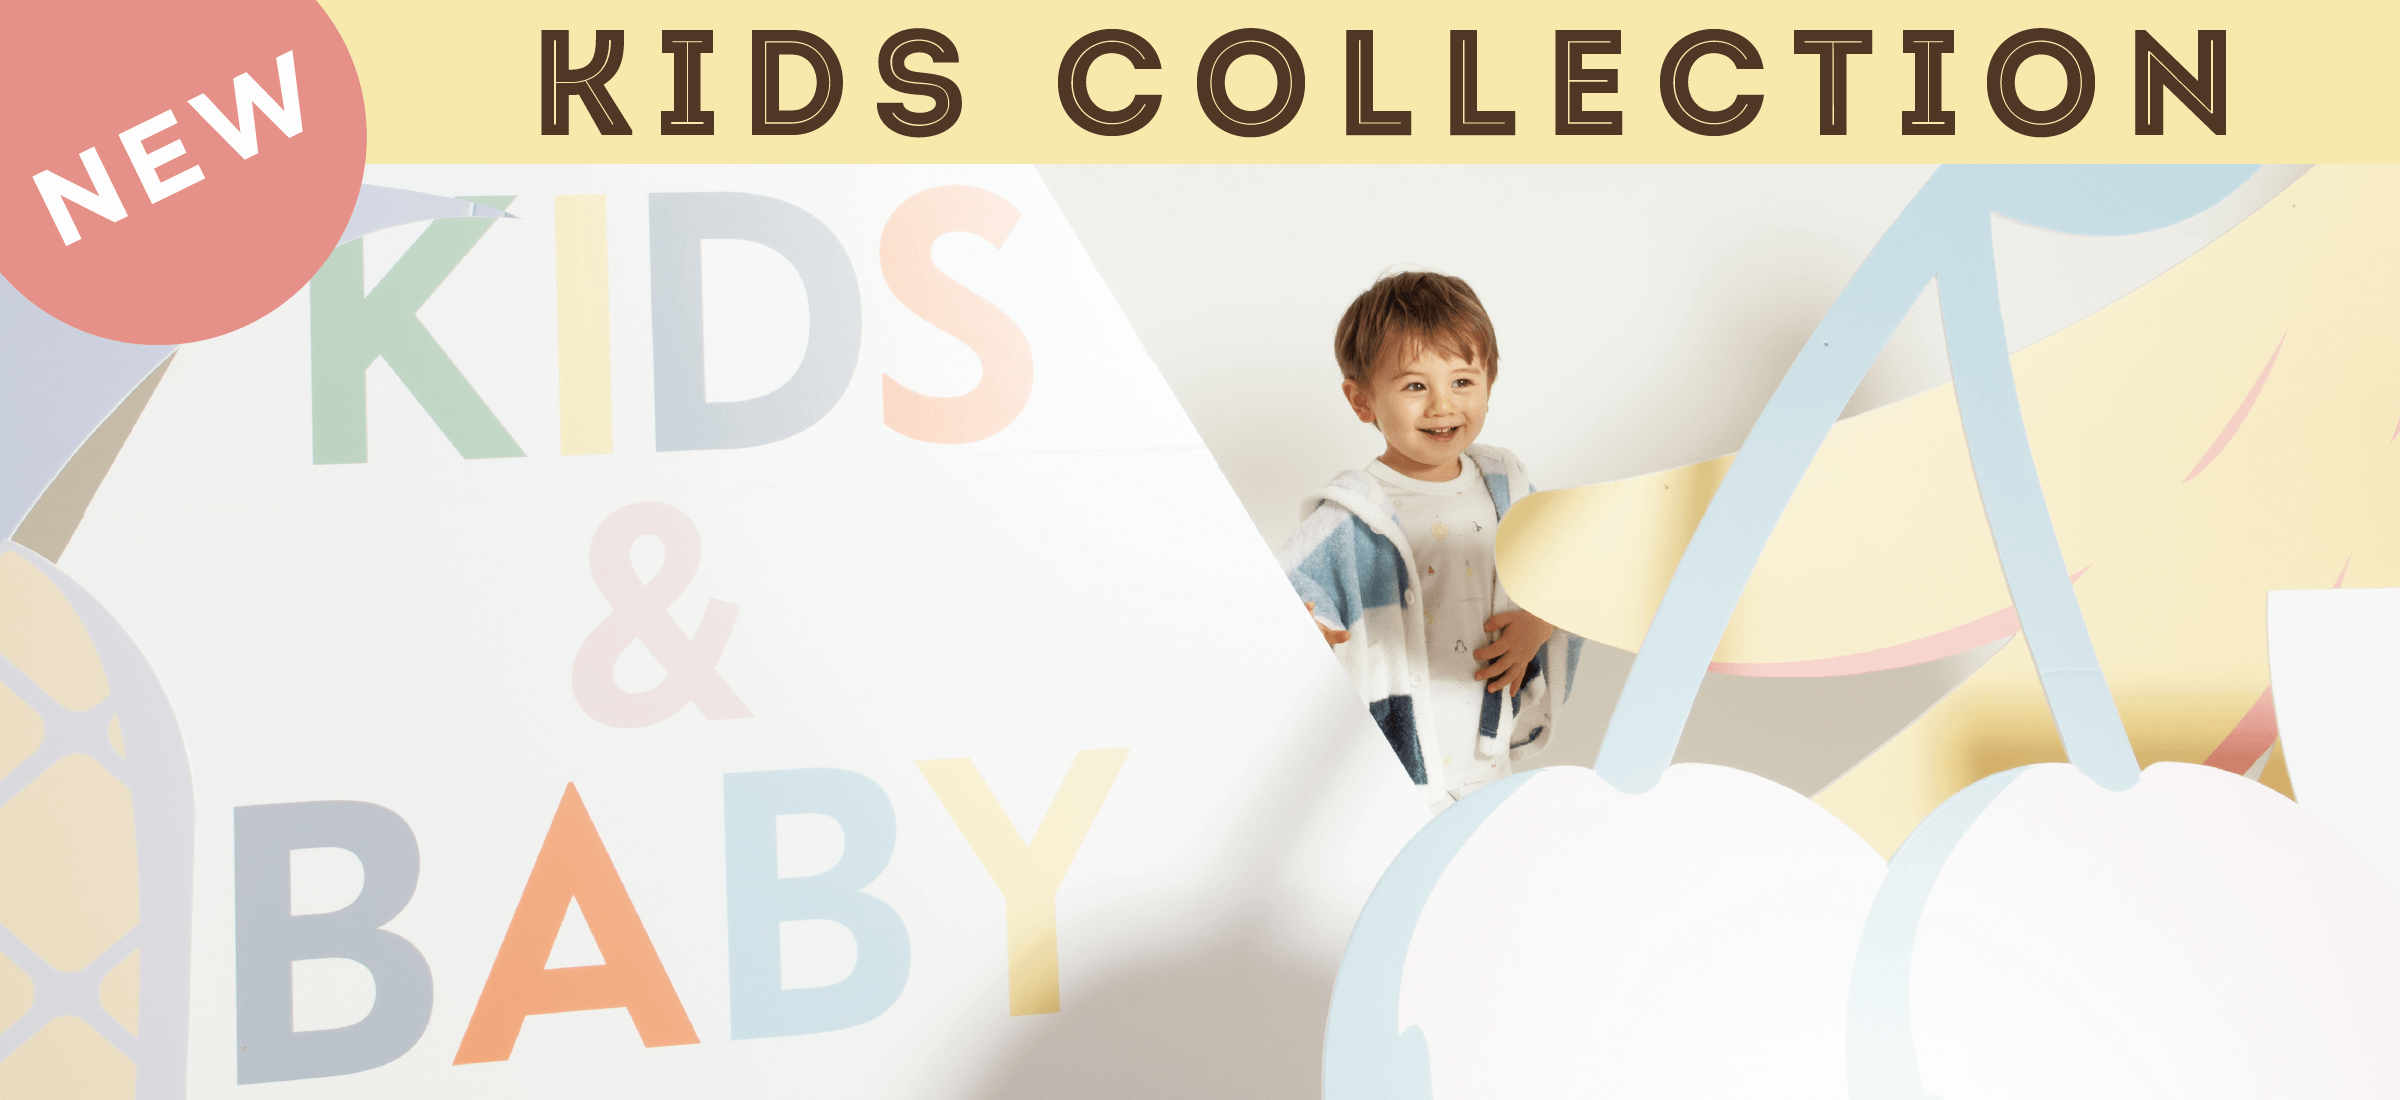 NEW KIDS COLLECTION